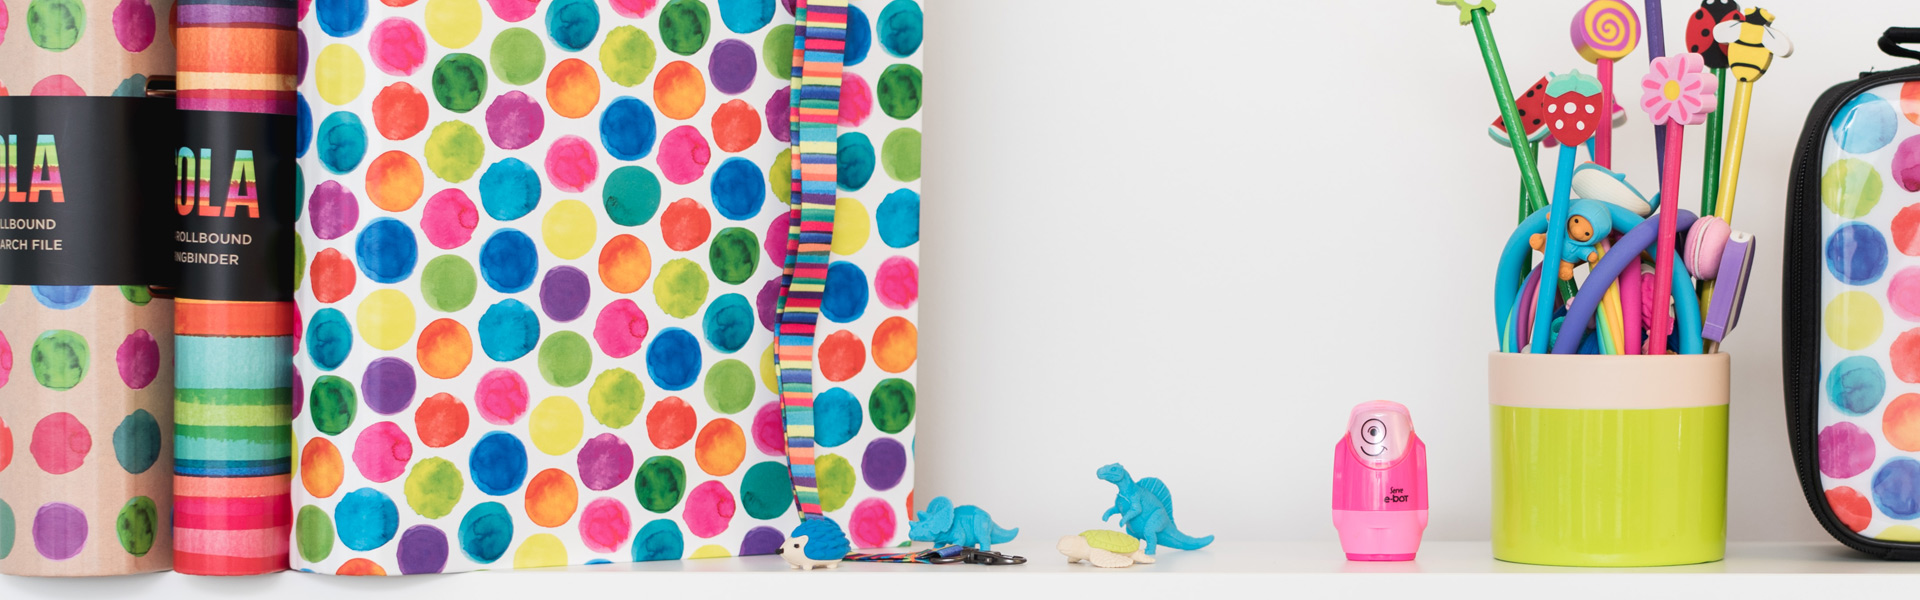 New! Make a Statement this Summer with our Sola Stationery